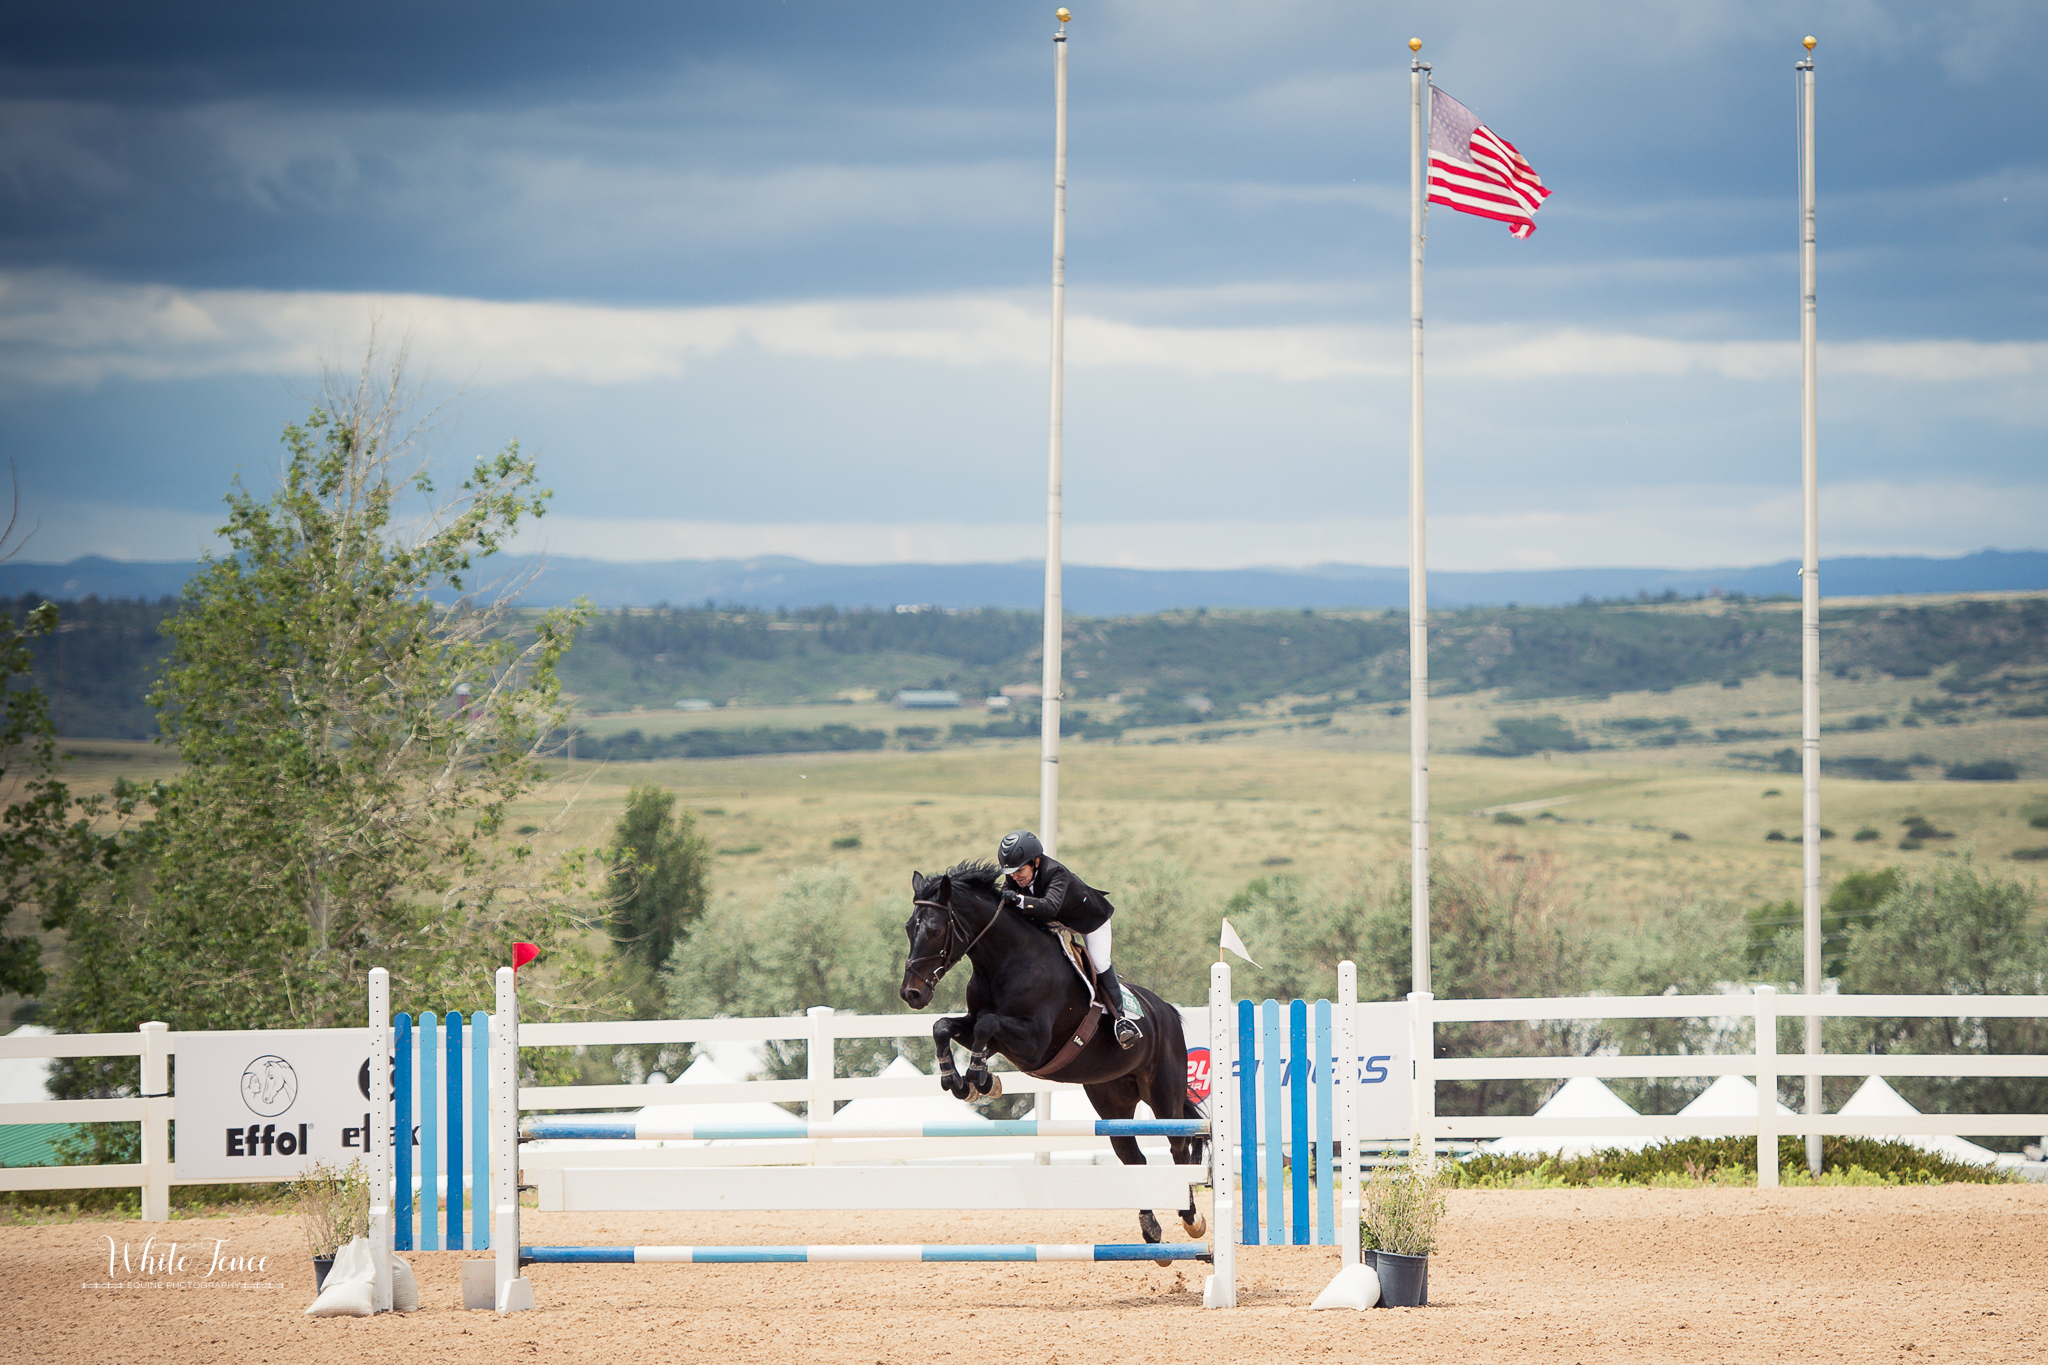 The Colorado Horse Park